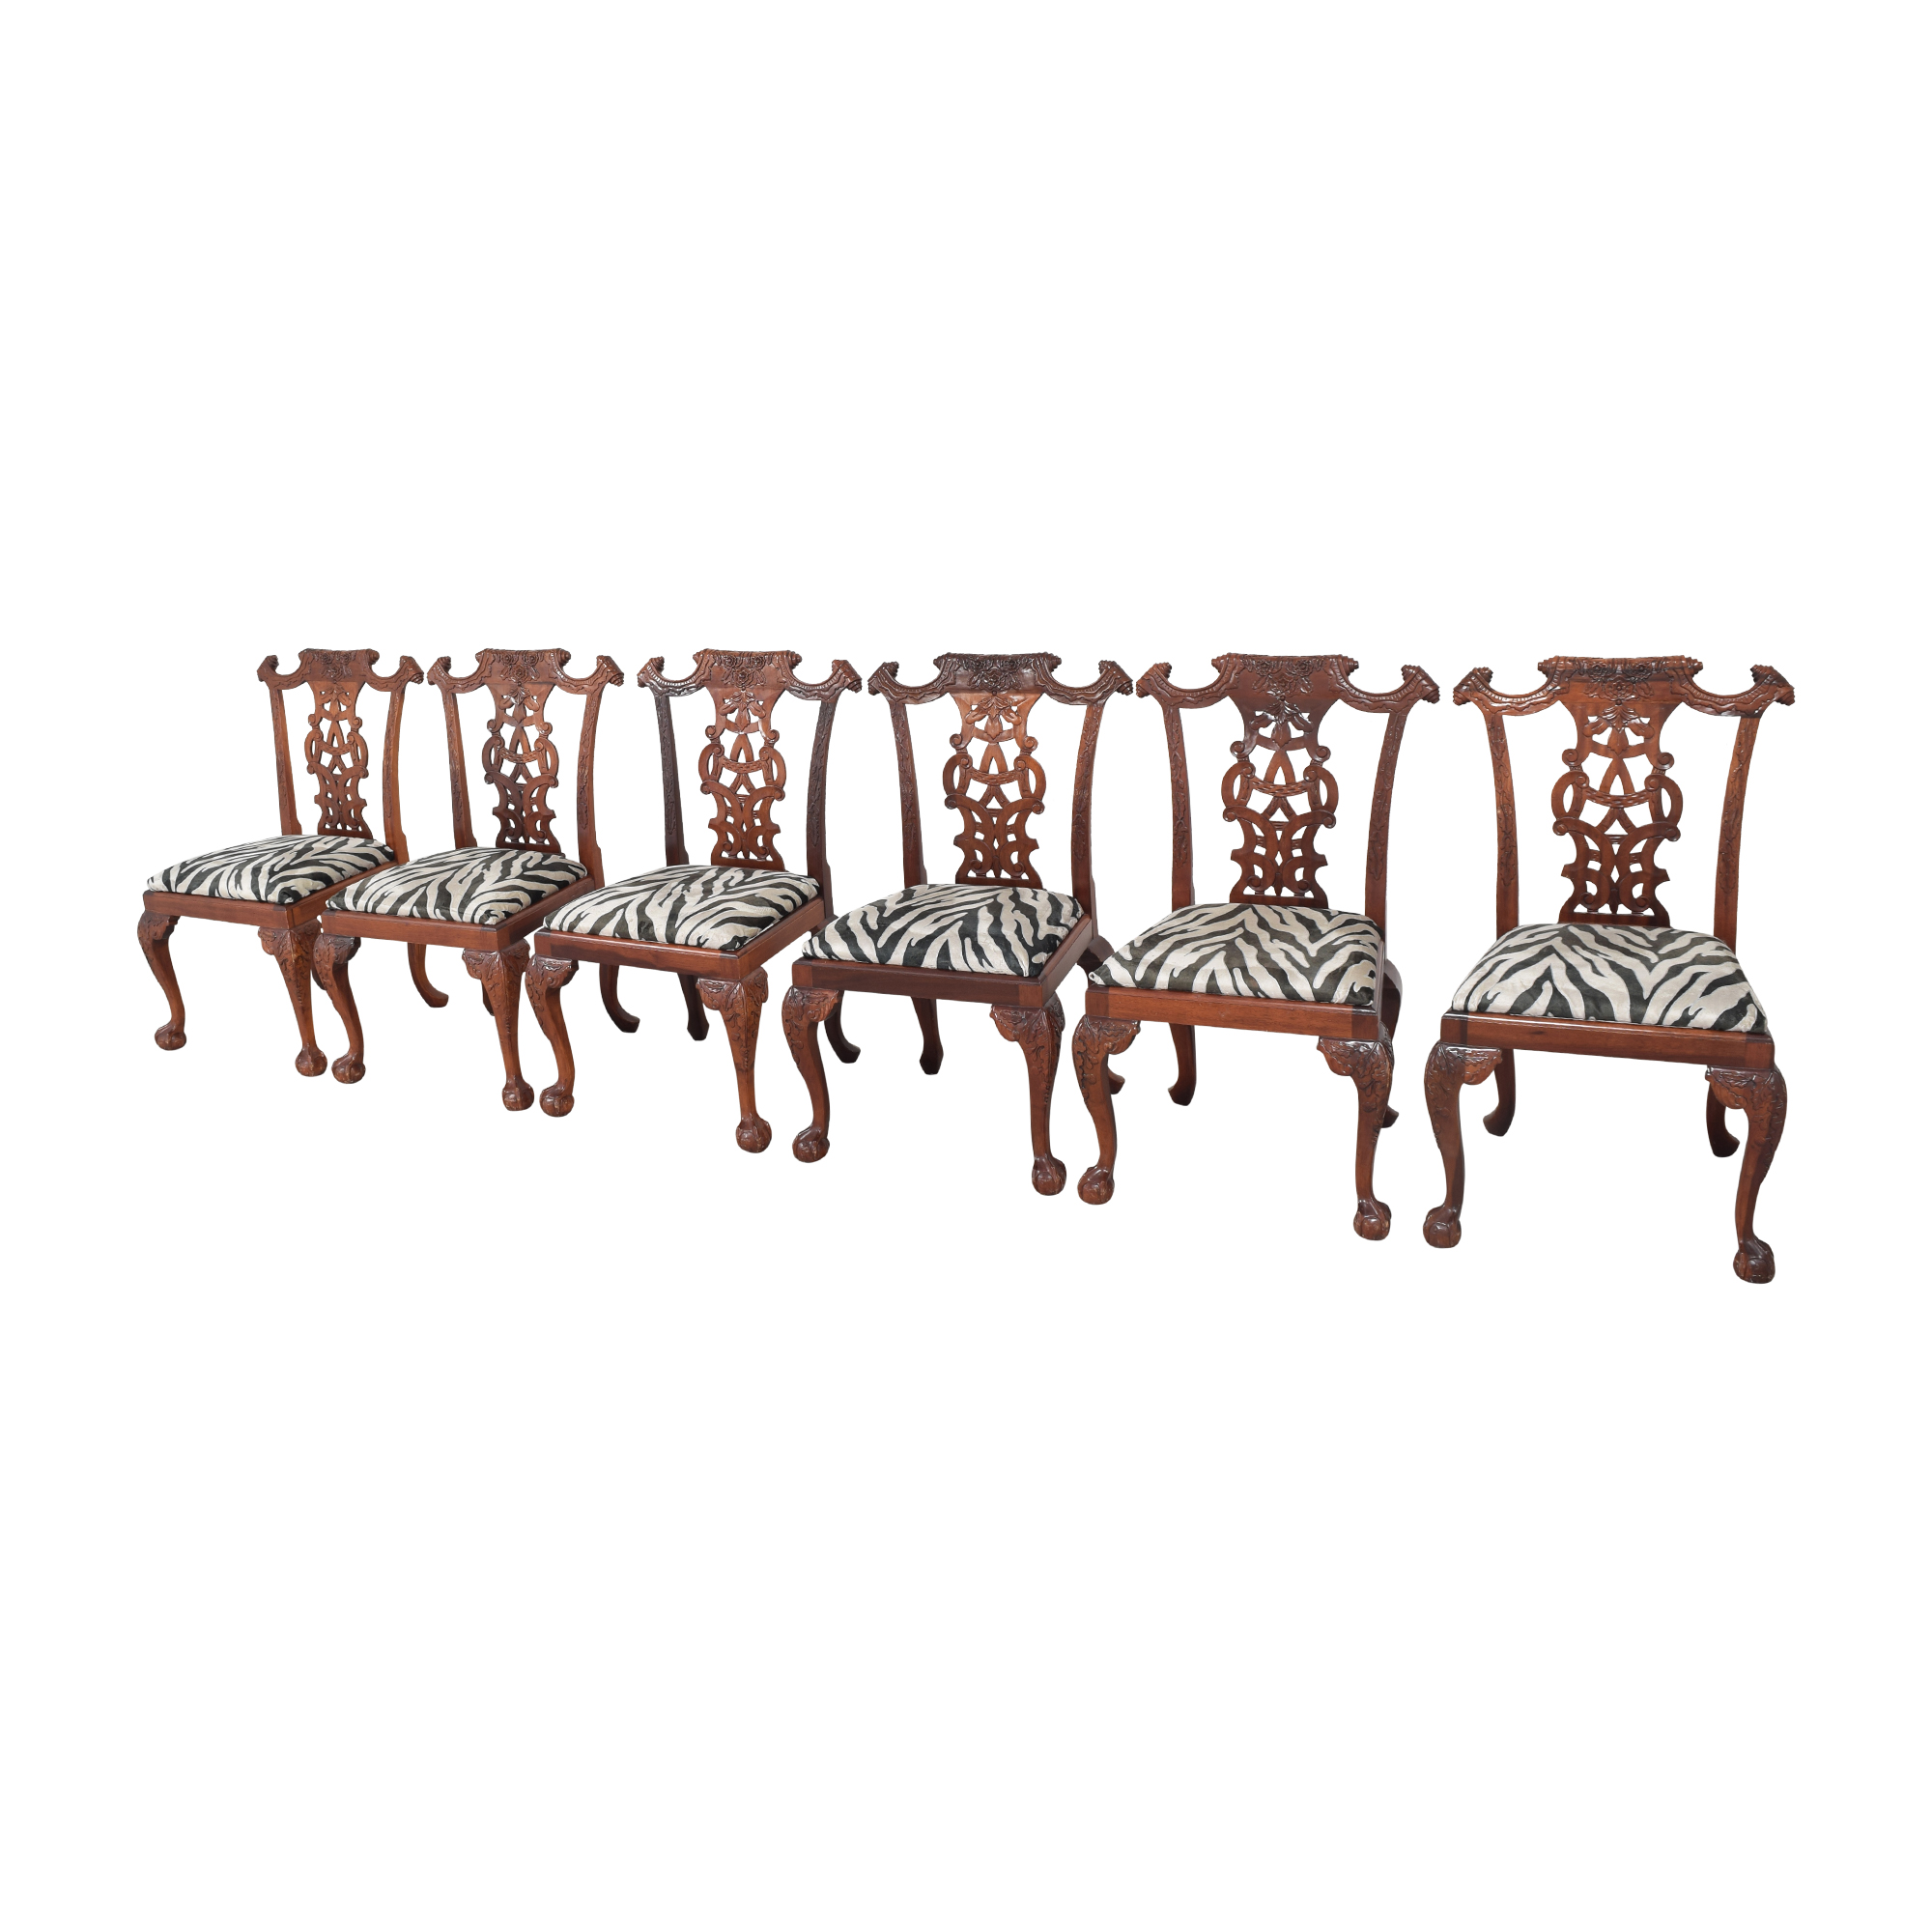 Animal Print Upholstered Dining Chairs price